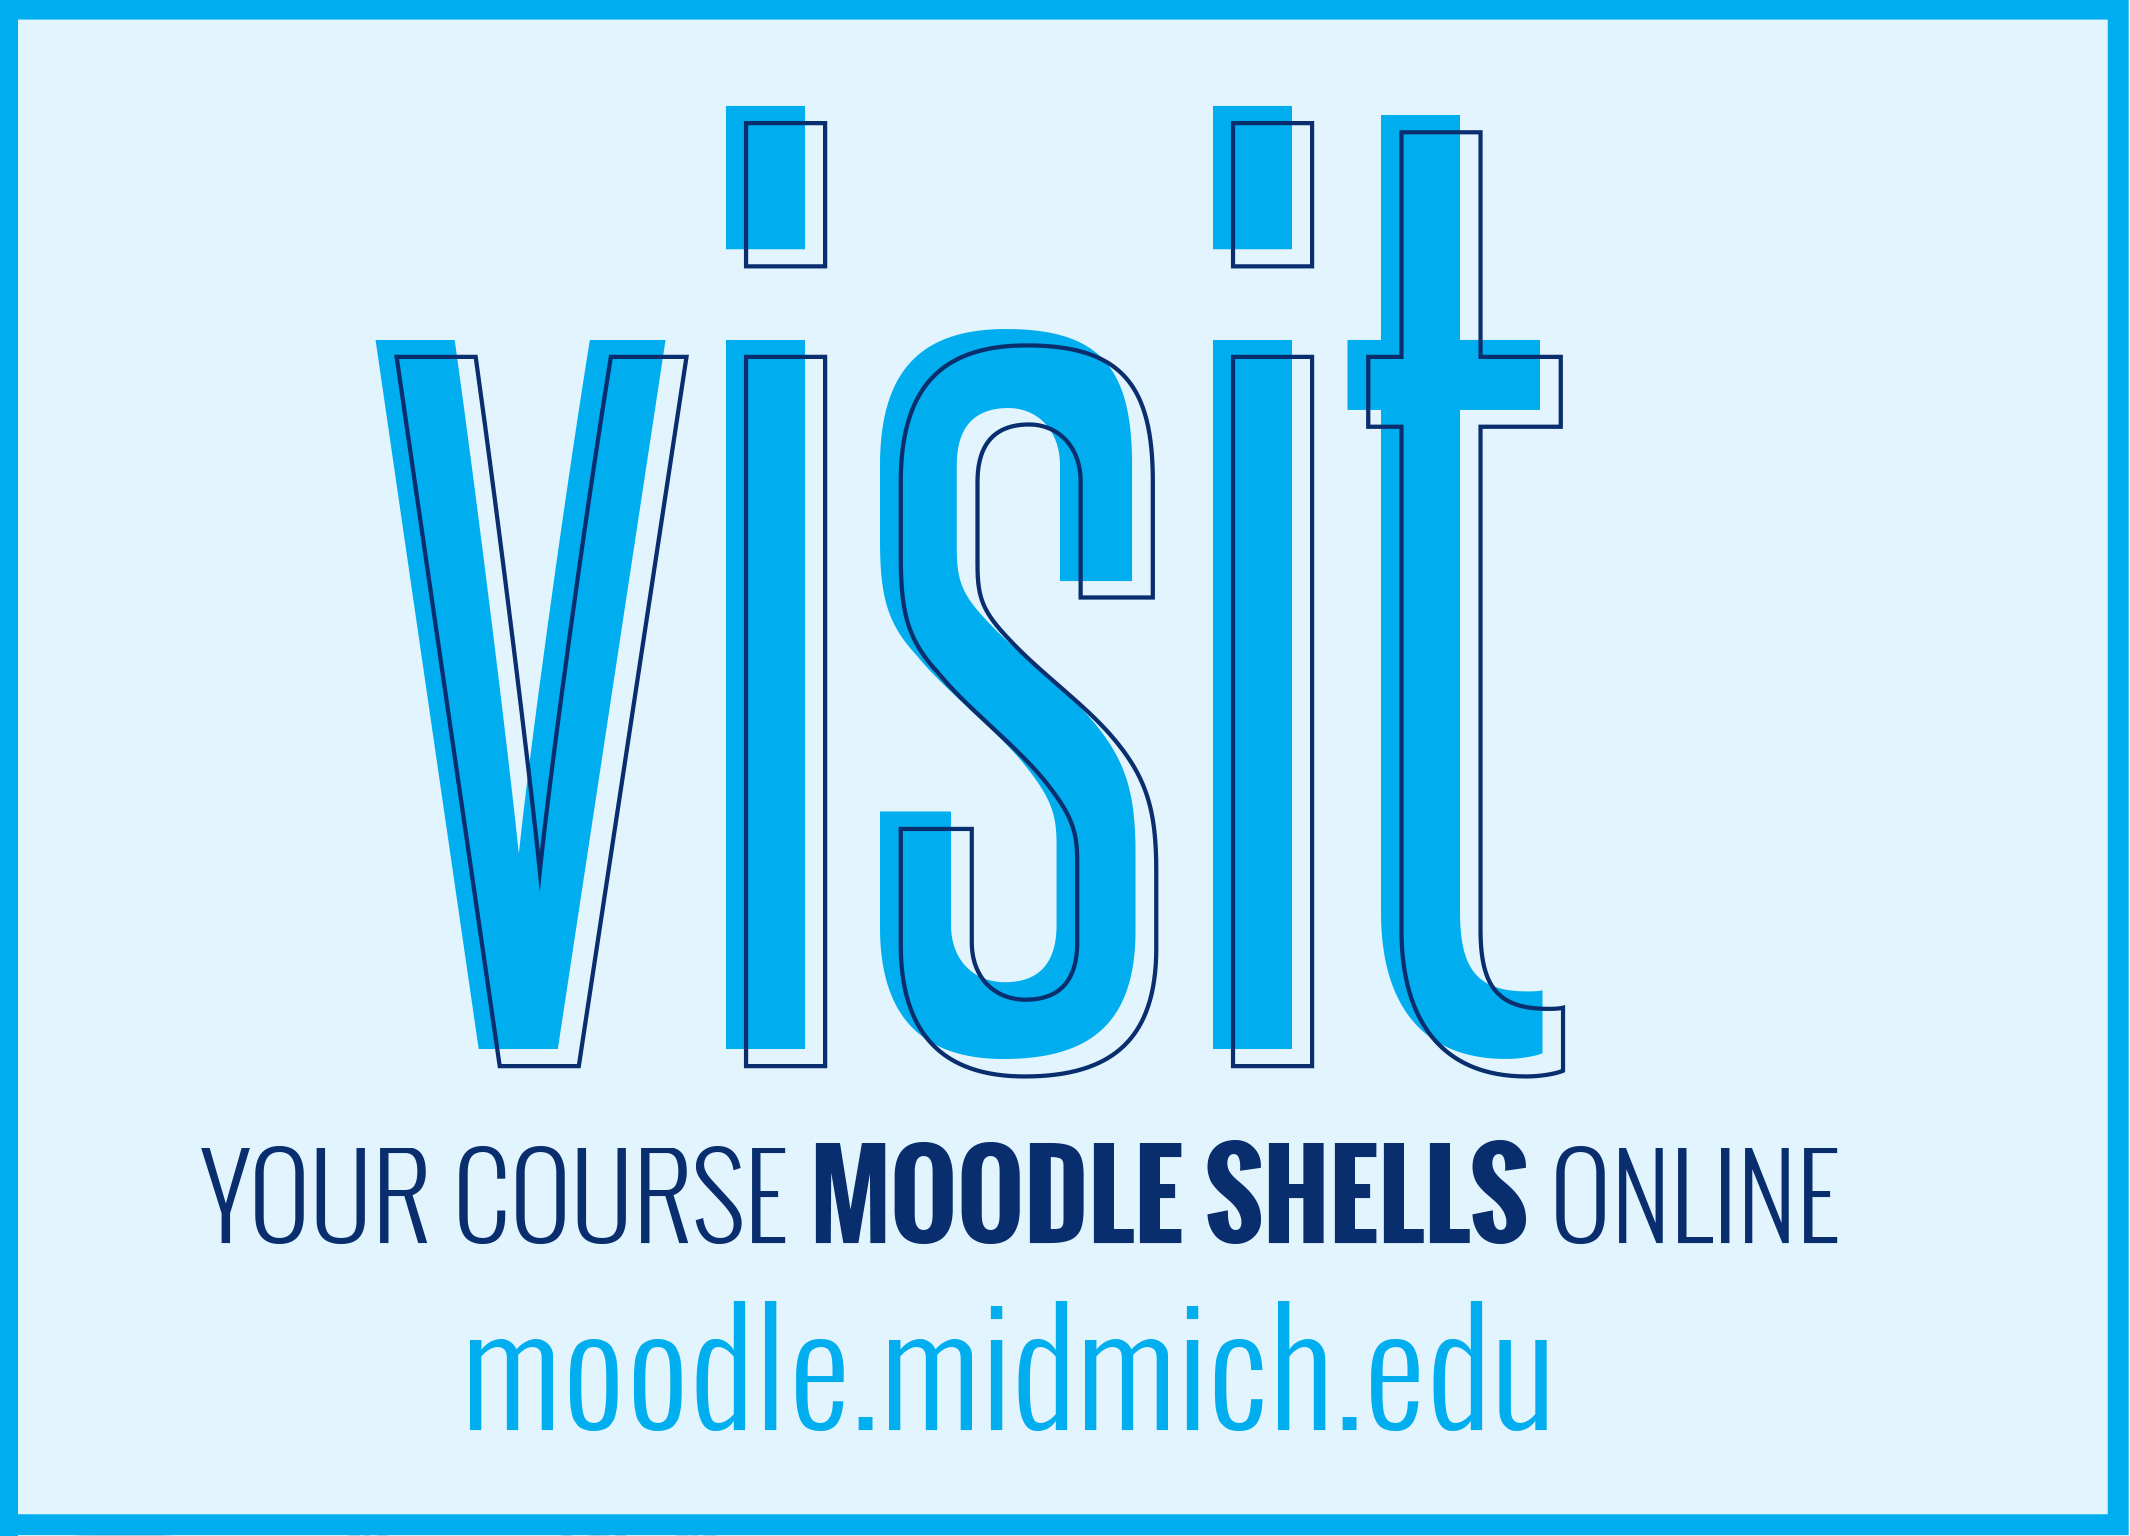 Visit the Moodle Shell